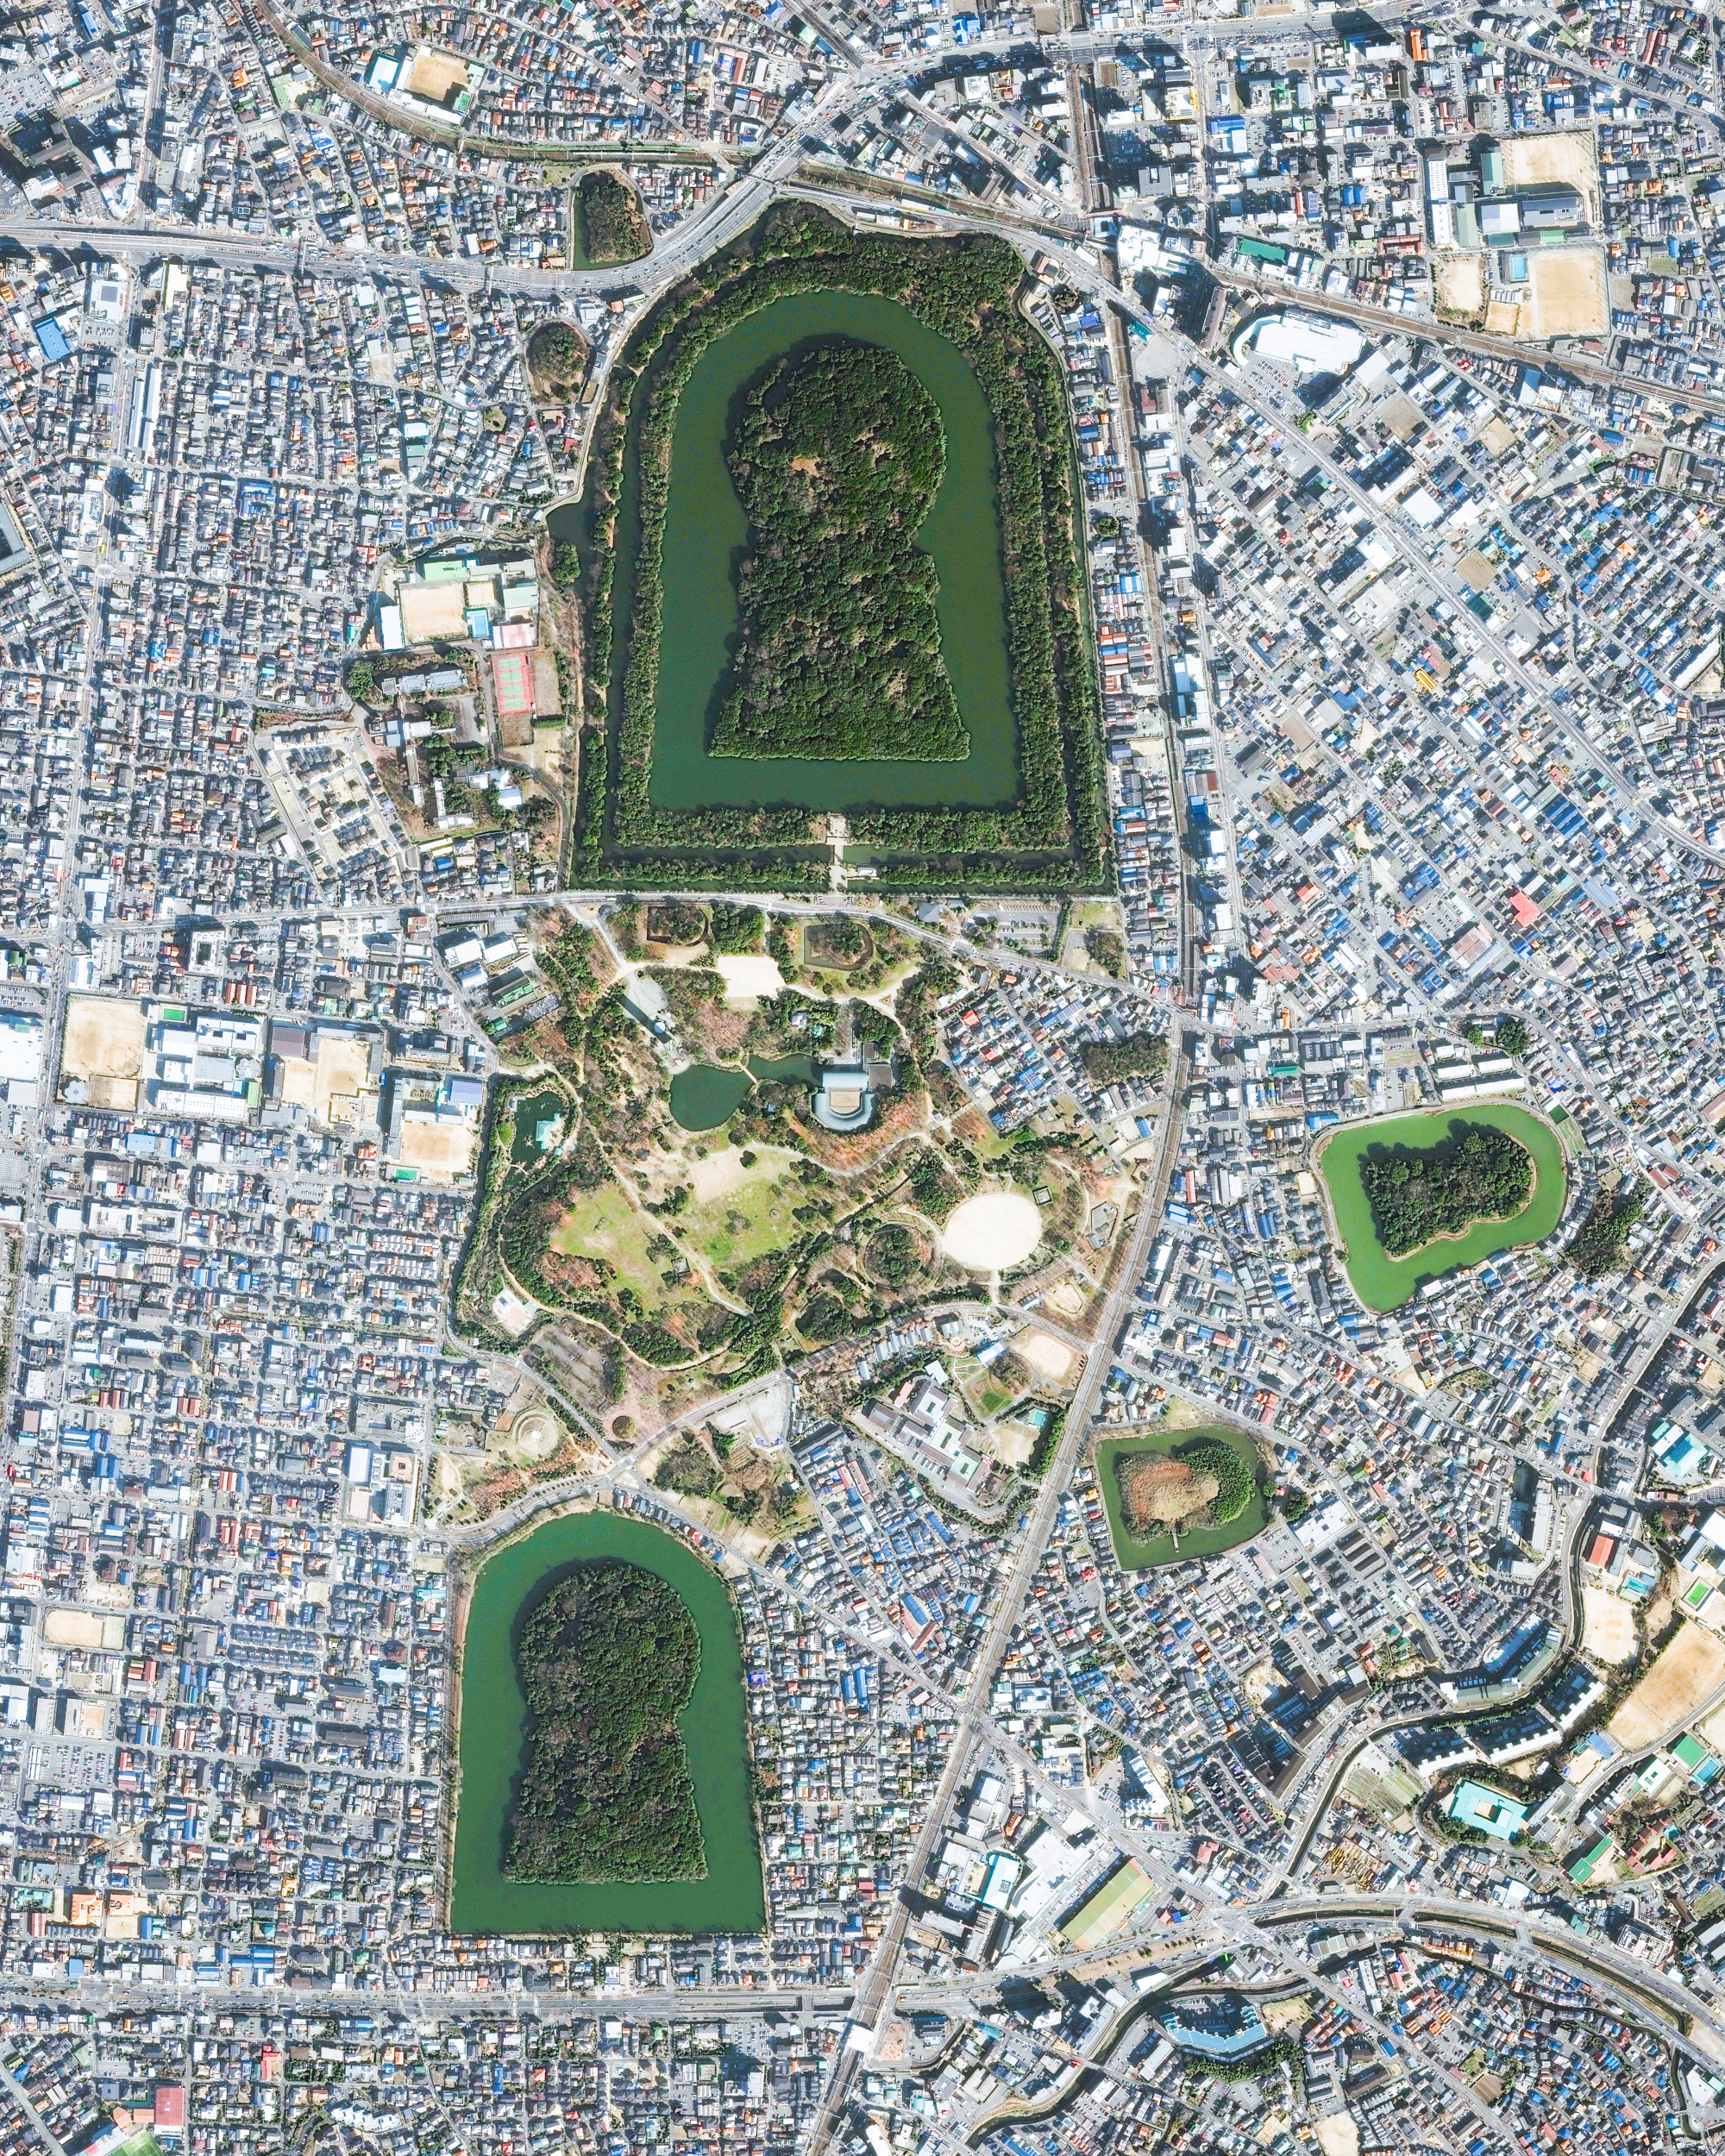 Keyhole-shaped tumuli are scattered throughout the city of Sakai in Japan's Osaka Prefecture. A tumulus is a mound of earth or stone raised over a grave, and the largest one shown in this Overview is the final resting place of Emperor Nintoku. Nearly 1,600 feet (486 m) long with a mound 115 feet (35 m) high, it covers the largest area of any tomb in the world.  34.562556°, 135.486417°  Source imagery: Maxar Technologies